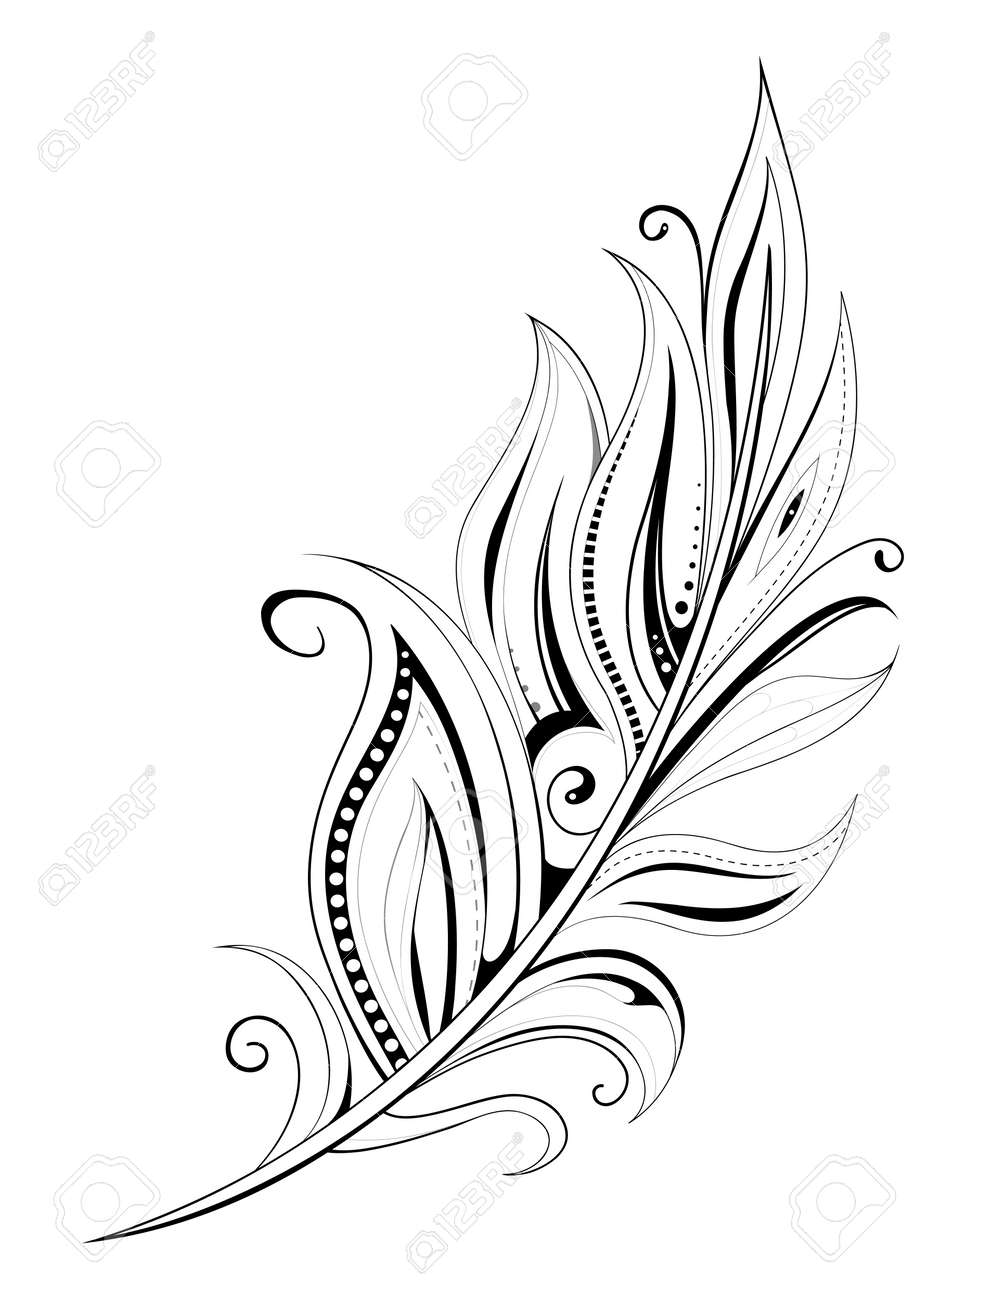 Feather tattoo with ethnic elements isolated on white - 44383137